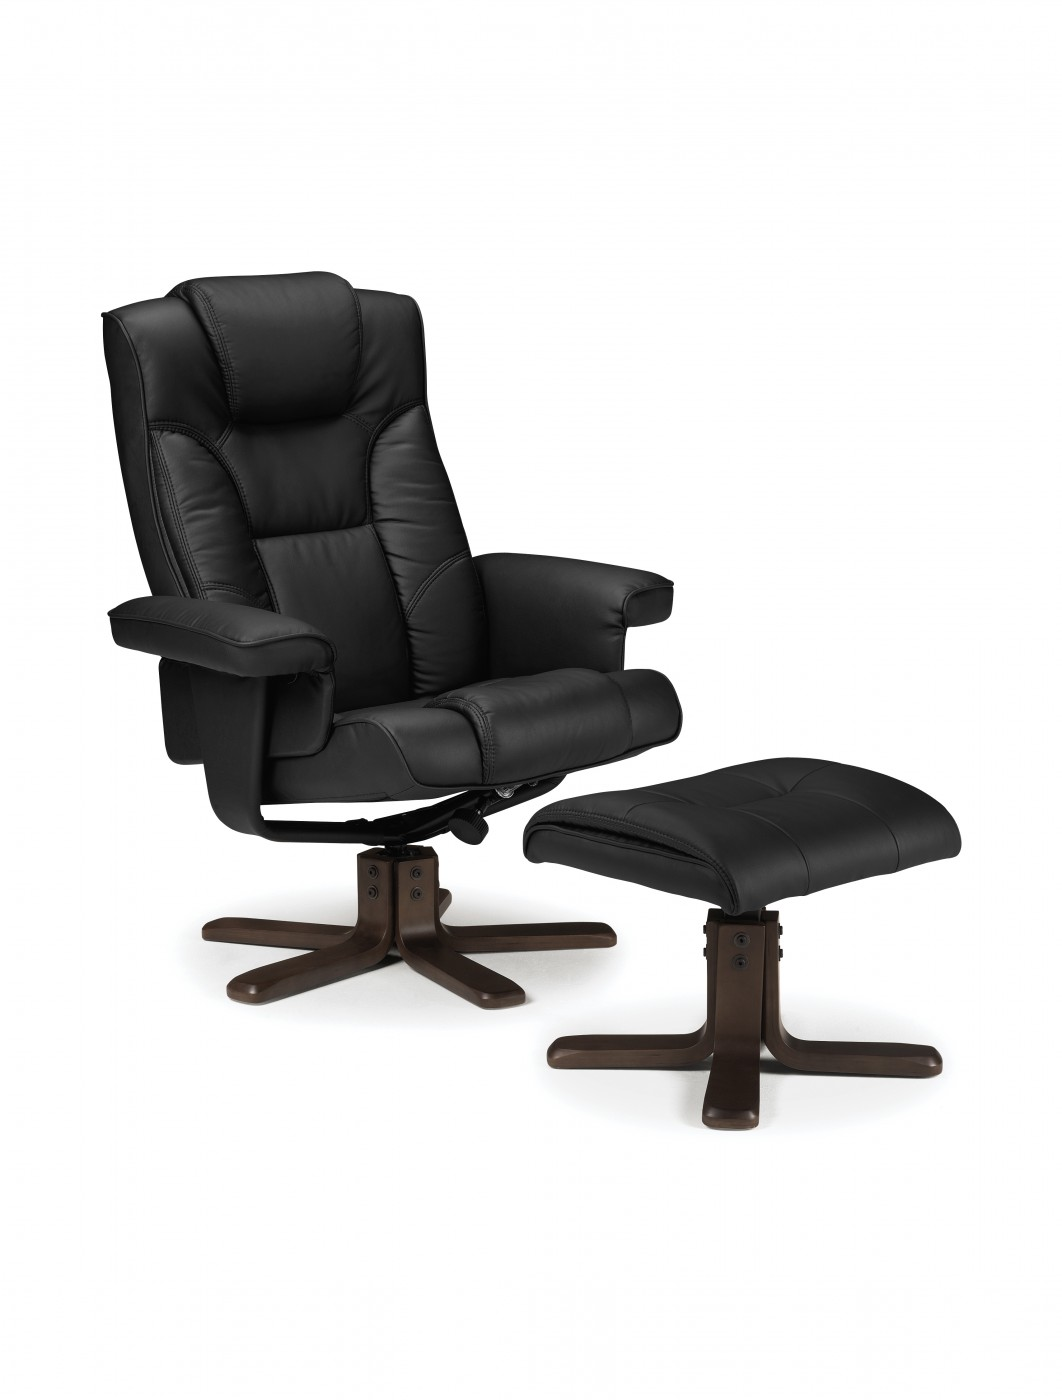 Swivel Recliner Chair MAL001 121 Office Furniture : 13800281146NOgTAUHmalmoreclinerstoolblack from www.121officefurniture.co.uk size 1062 x 1400 jpeg 80kB